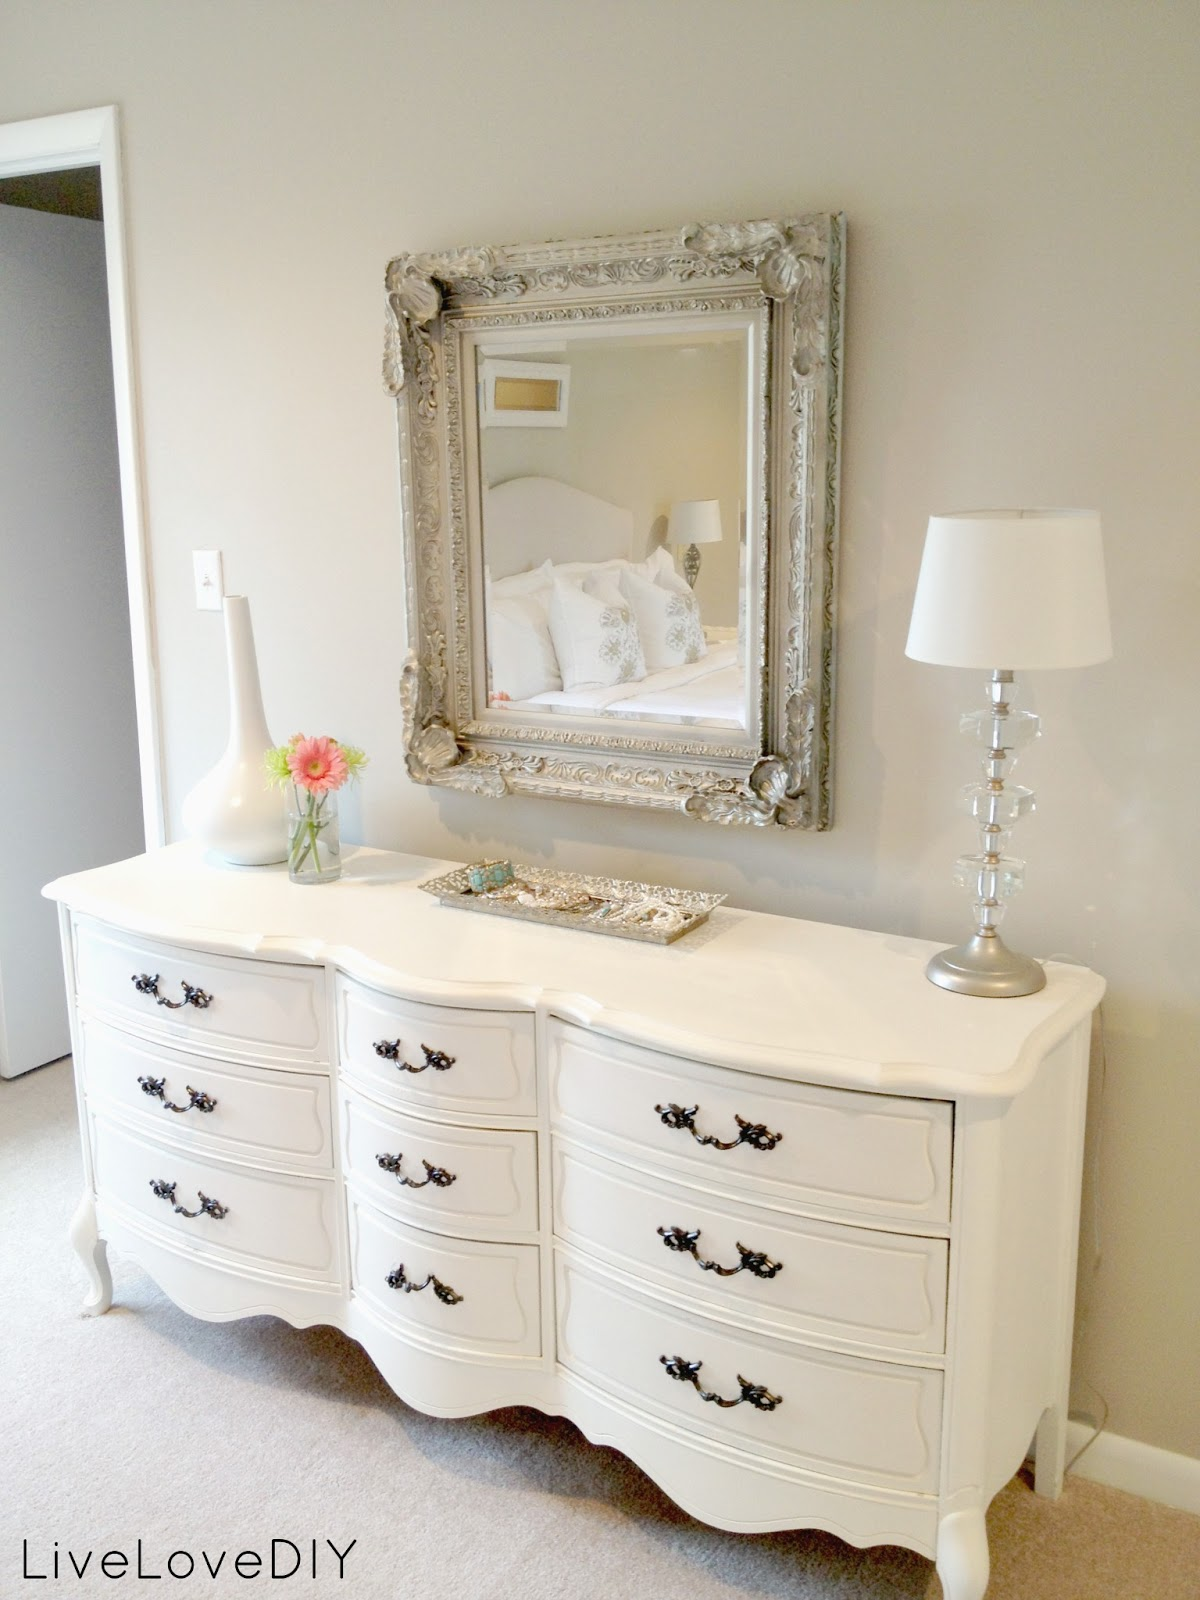 Livelovediy master bedroom updates for Bedroom dresser decor